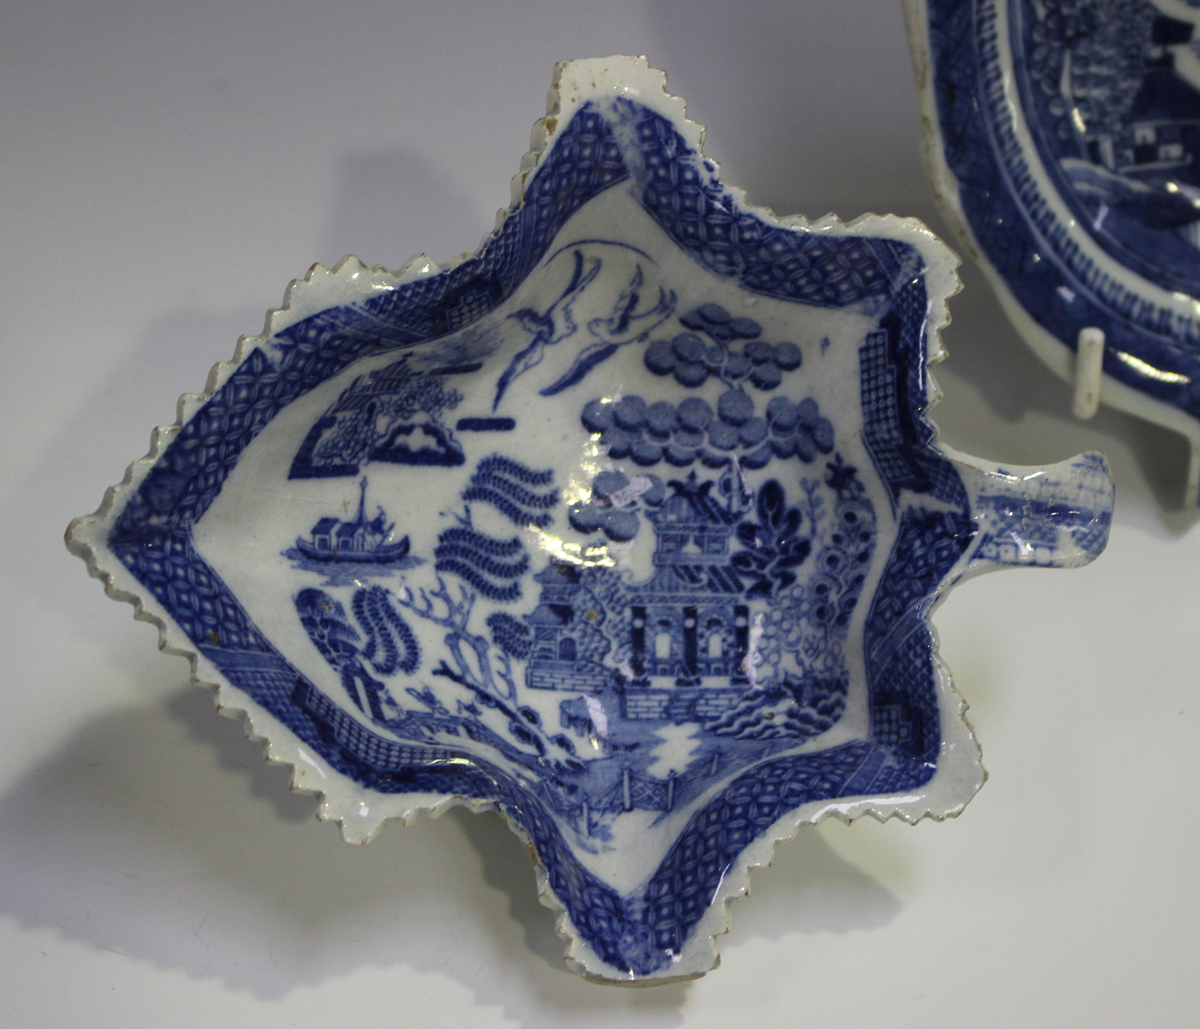 A pair of pearlware leaf shaped pickle dishes, late 18th/early 19th century, length 13.4cm, - Image 7 of 12